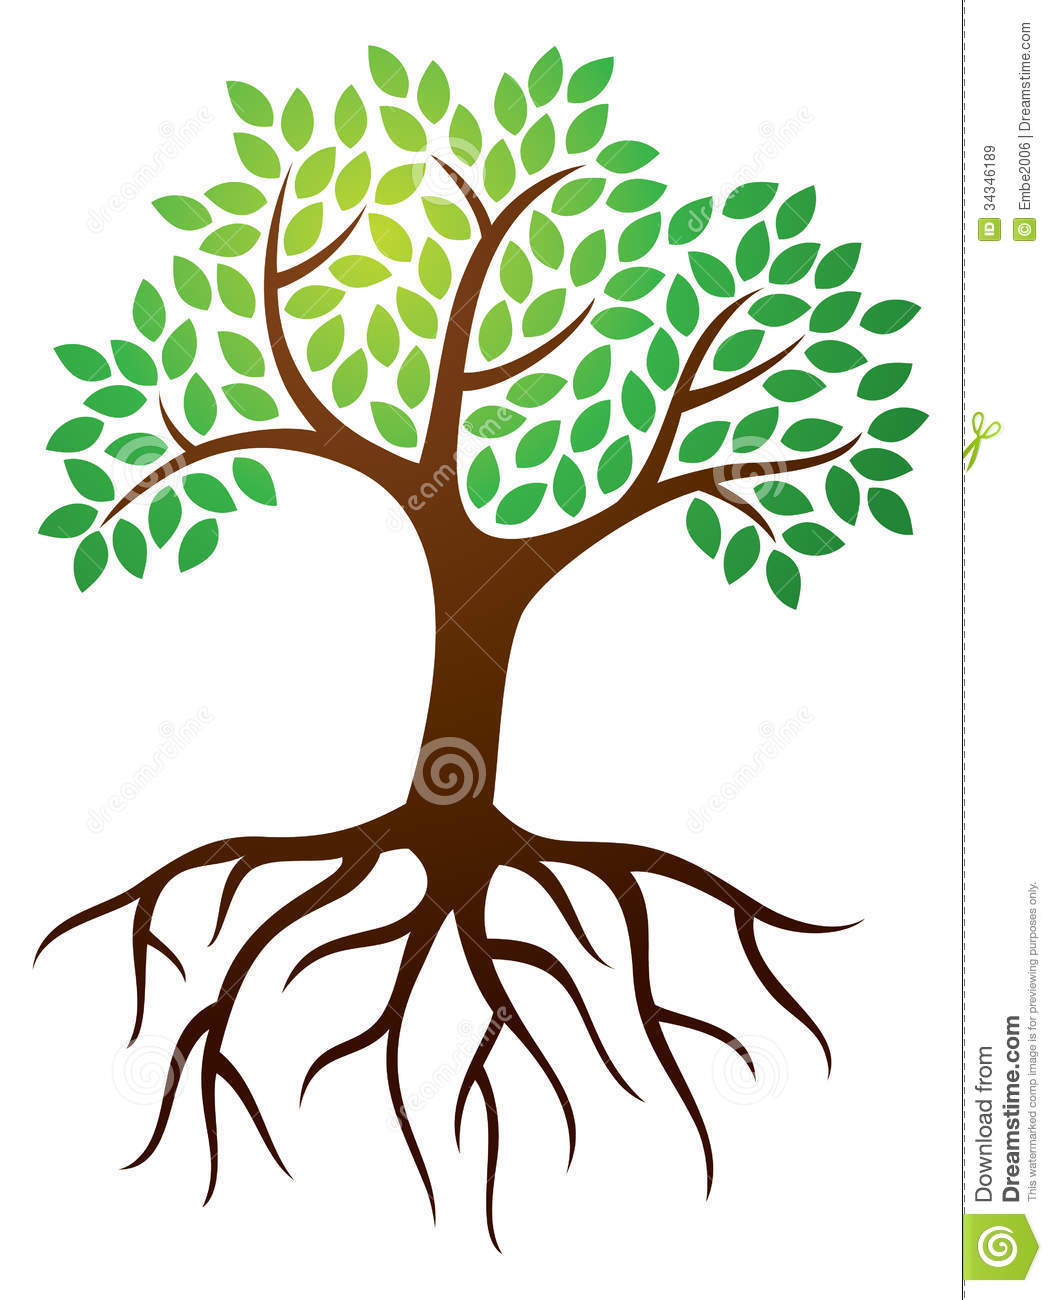 Healing clipart rooted tree  is LogoTree extensively clip